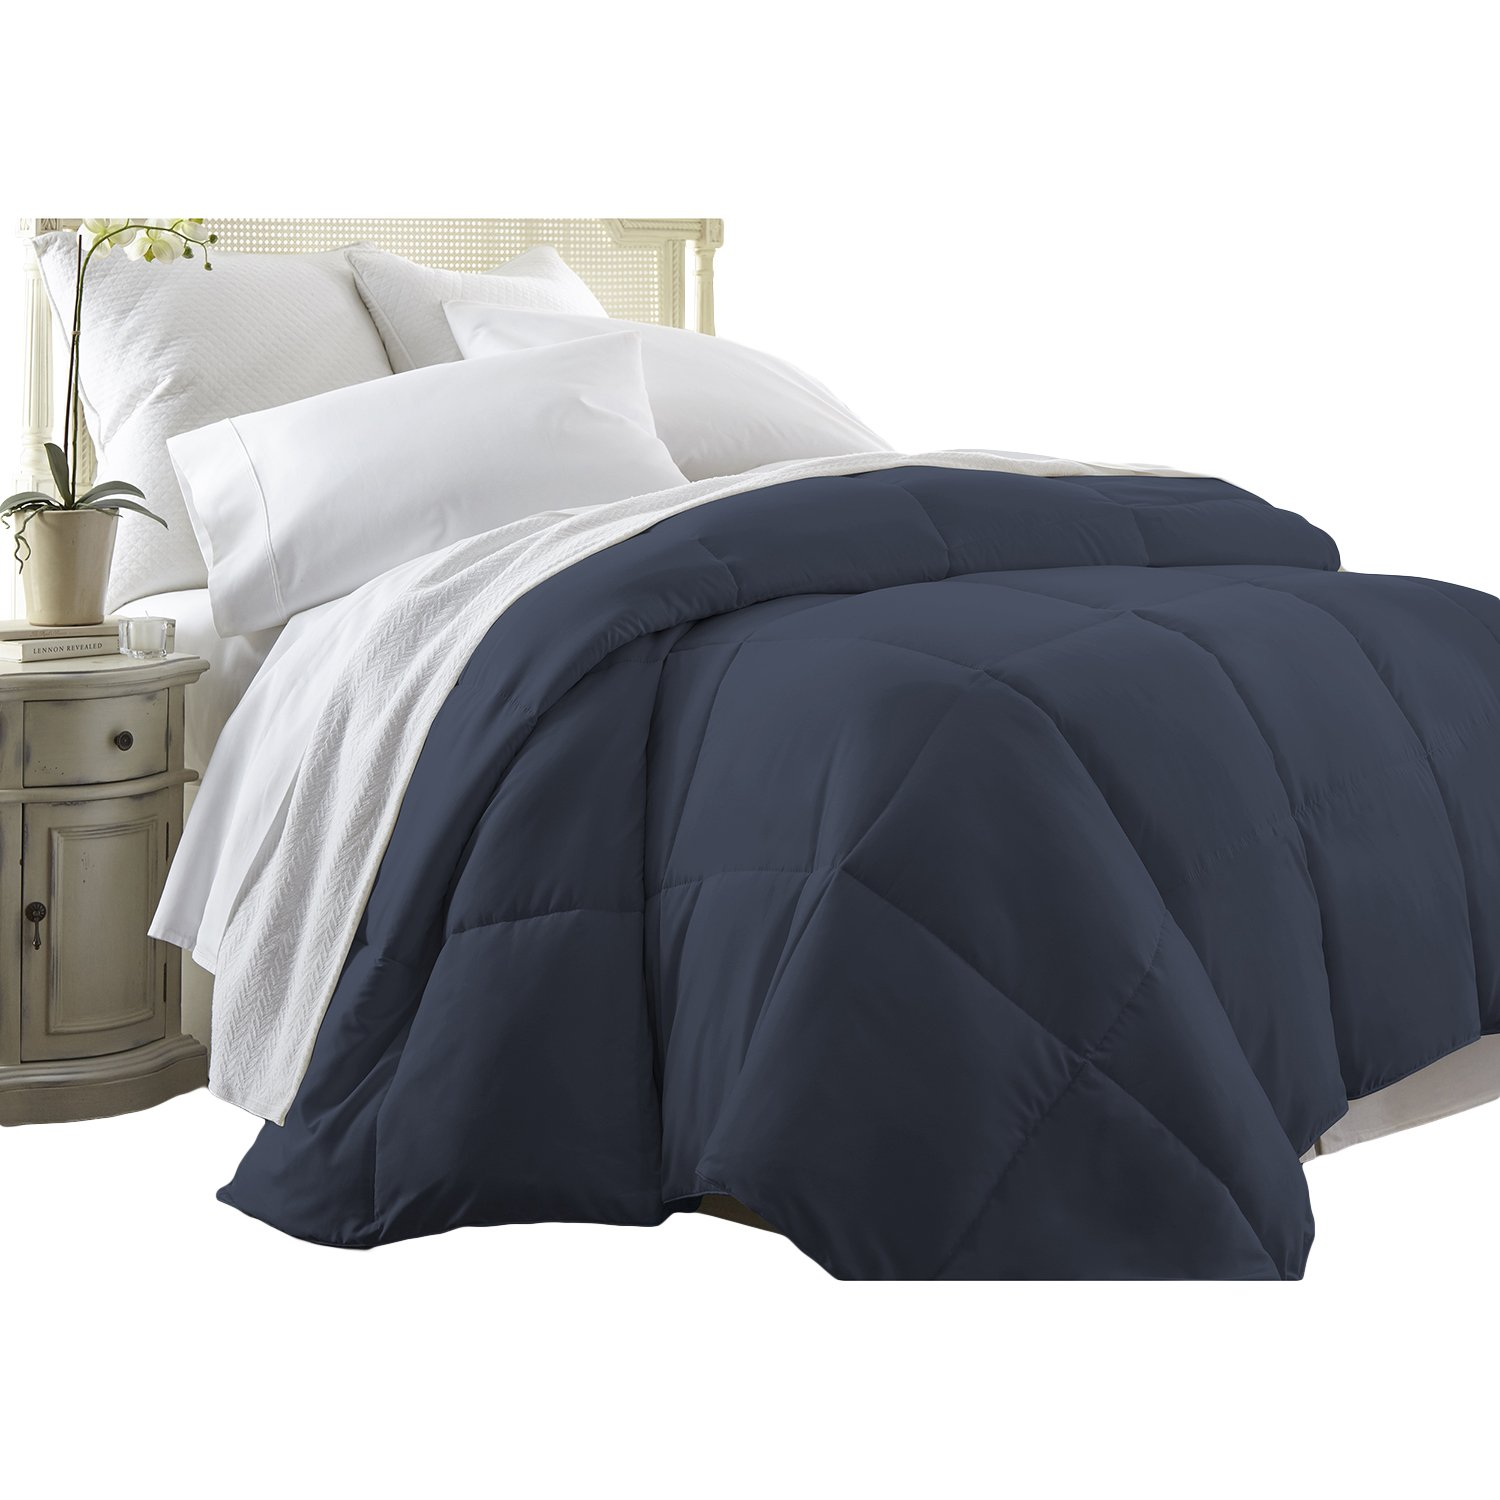 box sets c stitched comforters extra panama covers white jack and by duvet insert bedding down comforter quilted hypoallergenic duvets plush